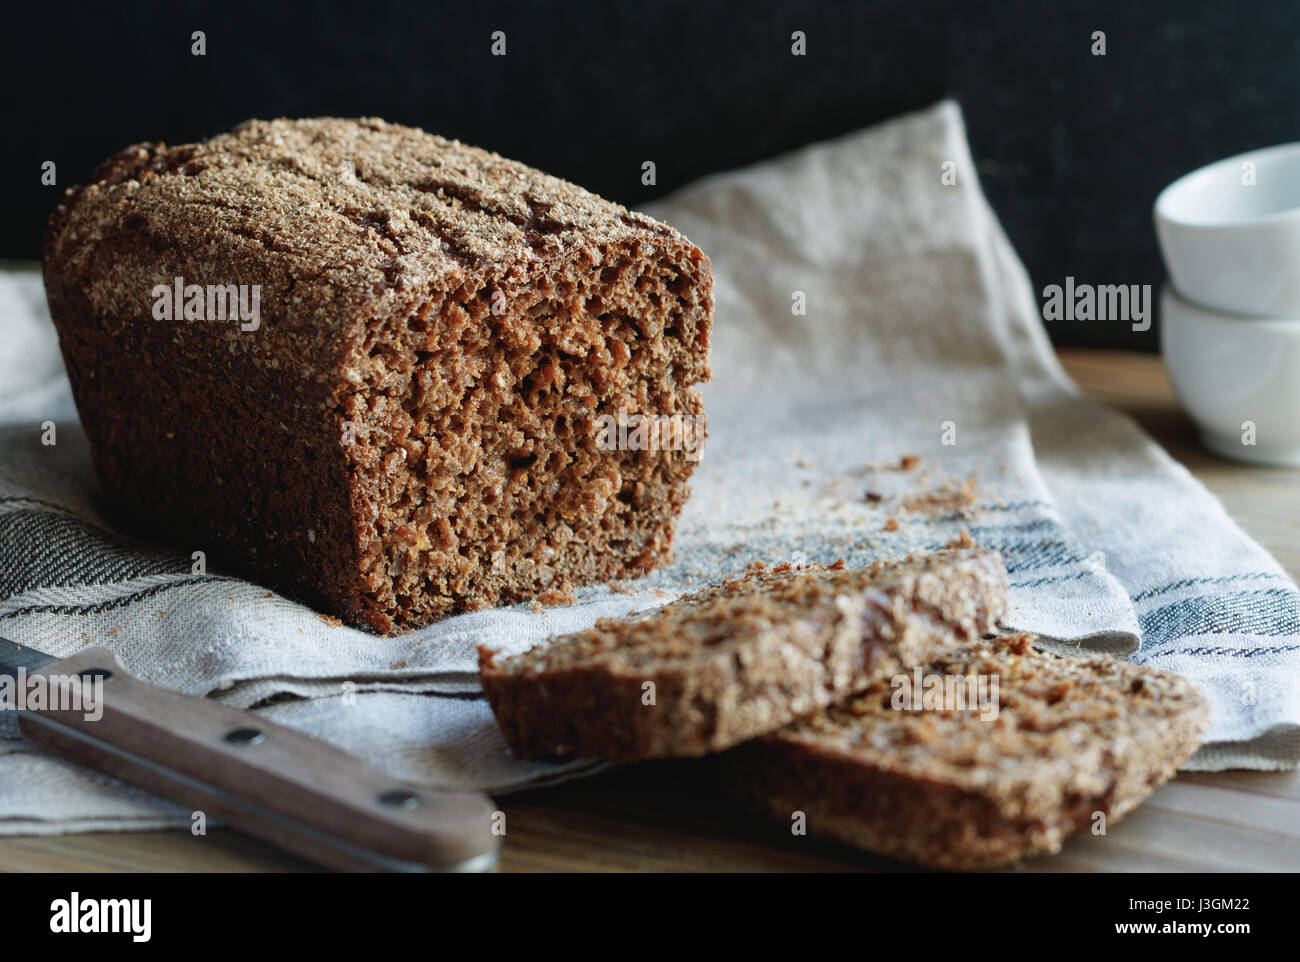 Close-up of loaf of grain rye bread on a wooden table. - Stock Image